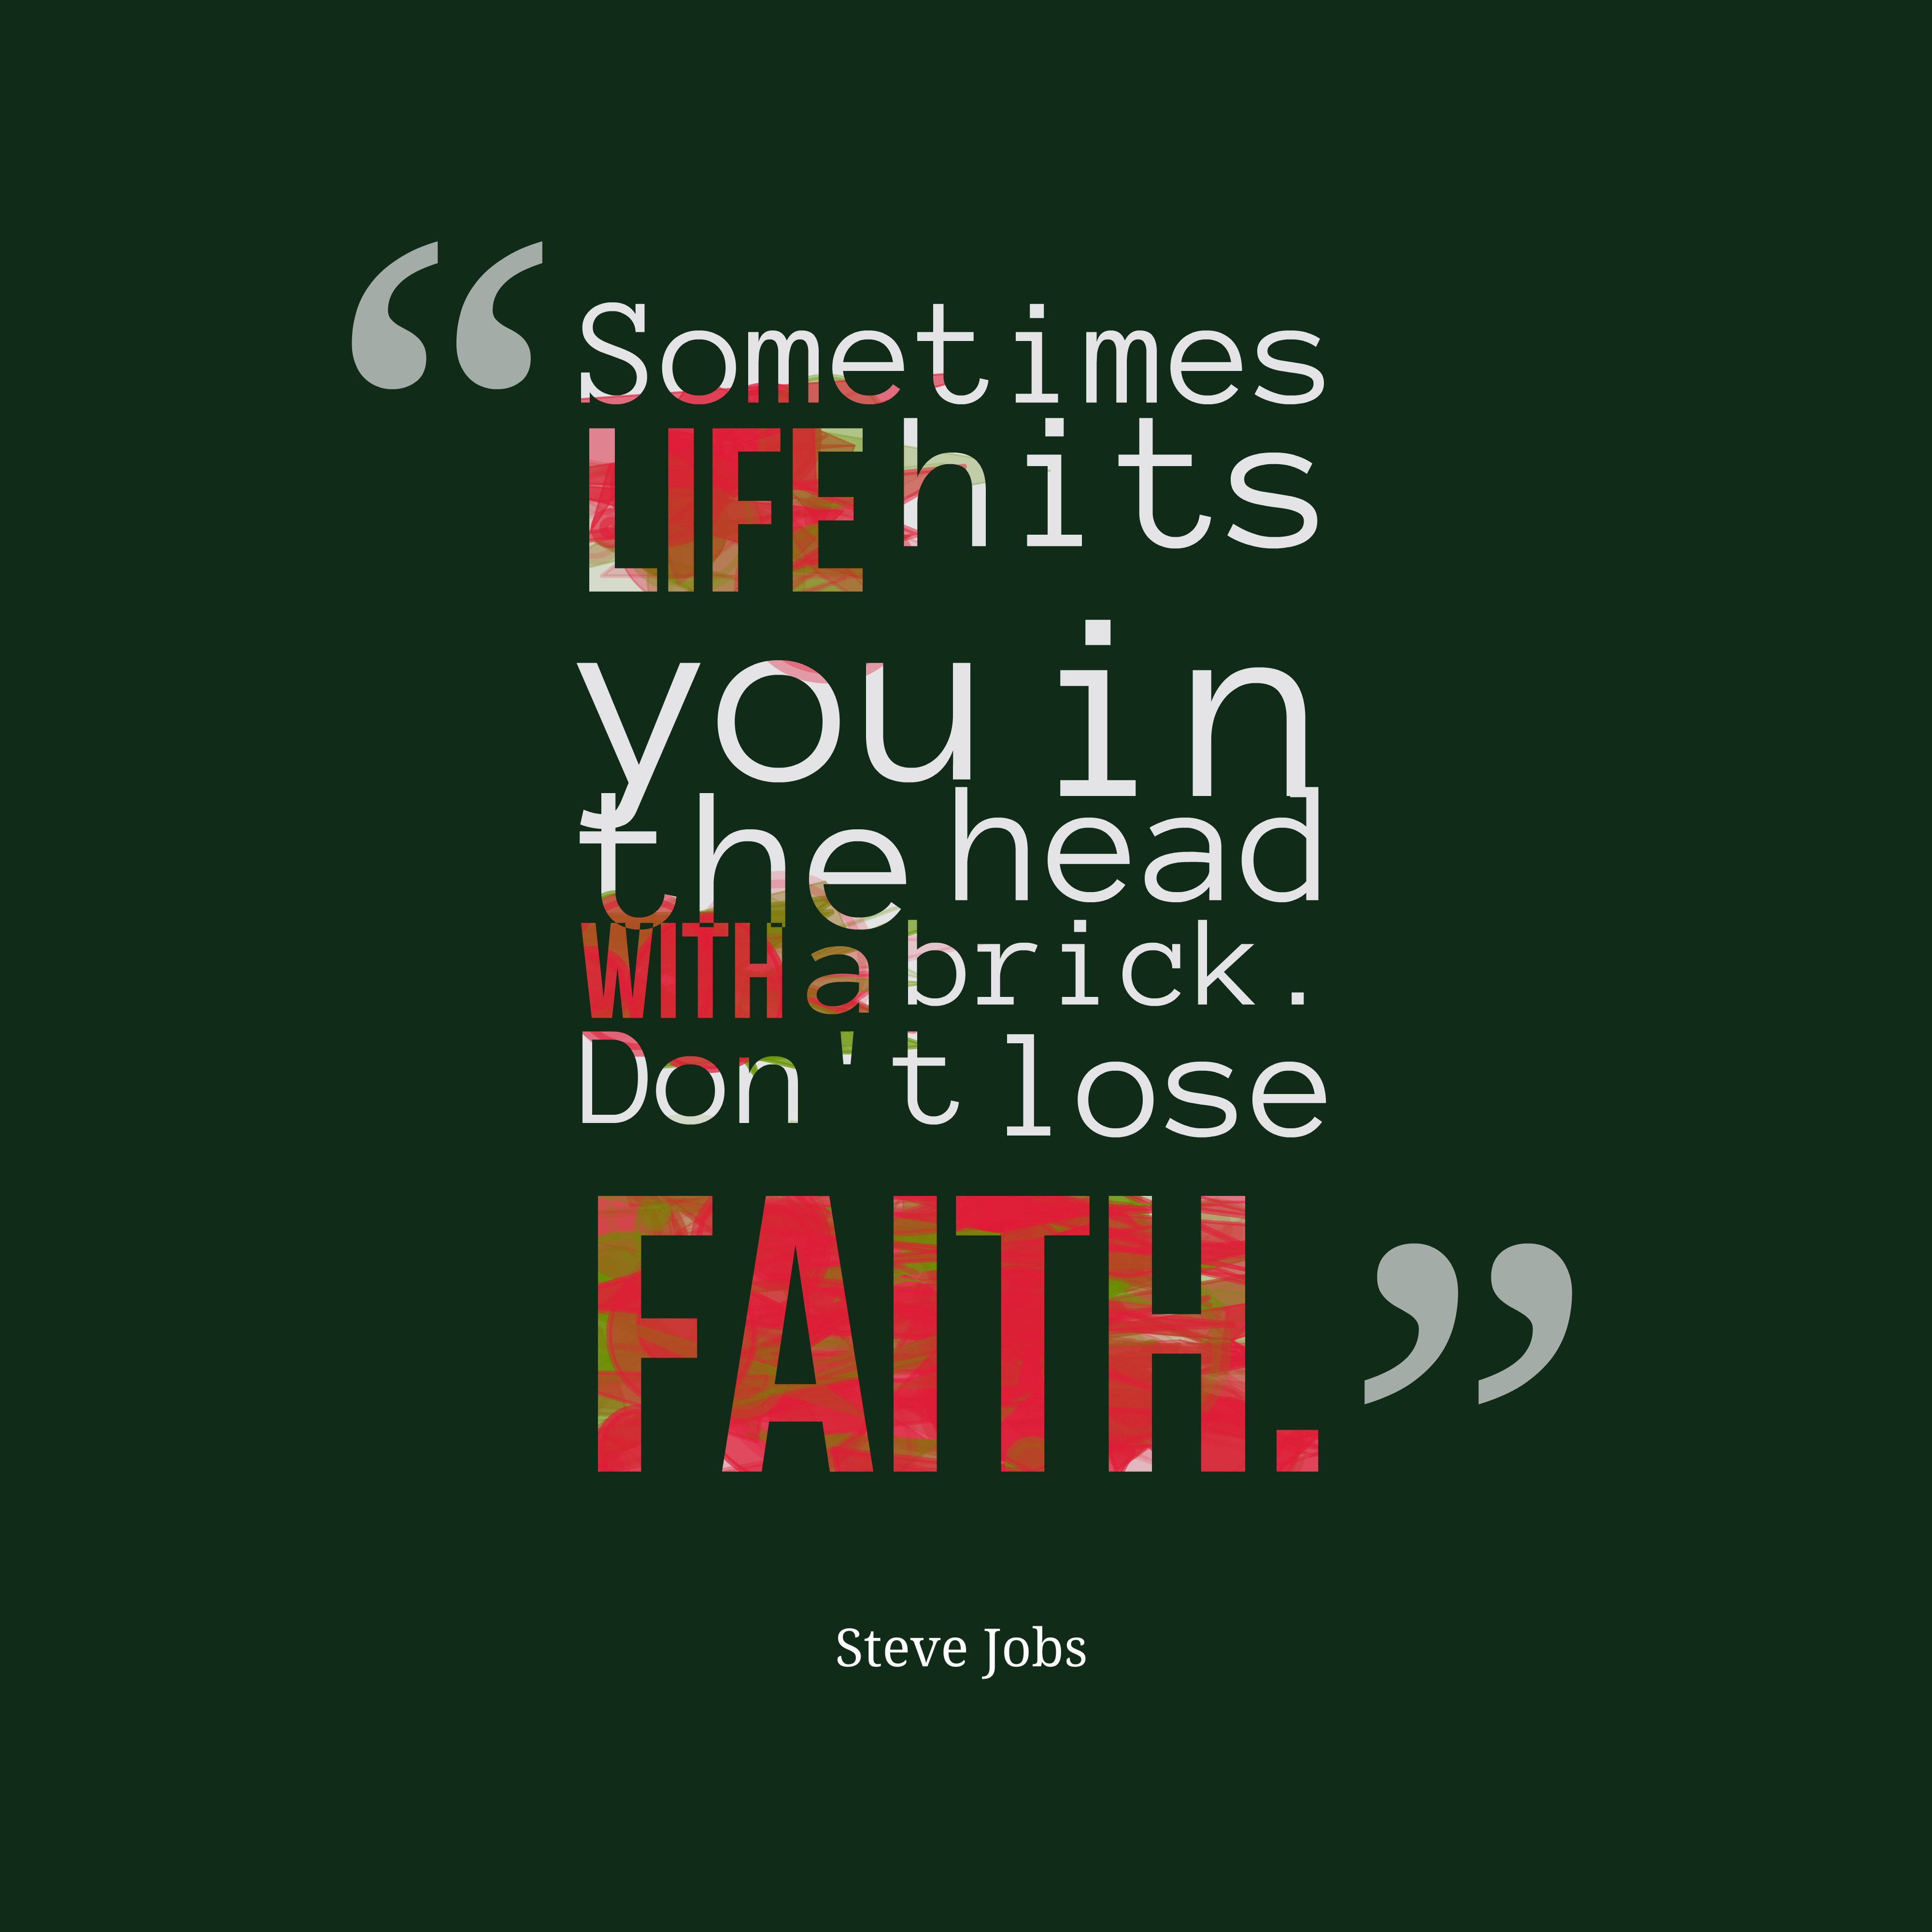 Quotes image of Sometimes life hits you in the head with a brick. Don't lose faith.